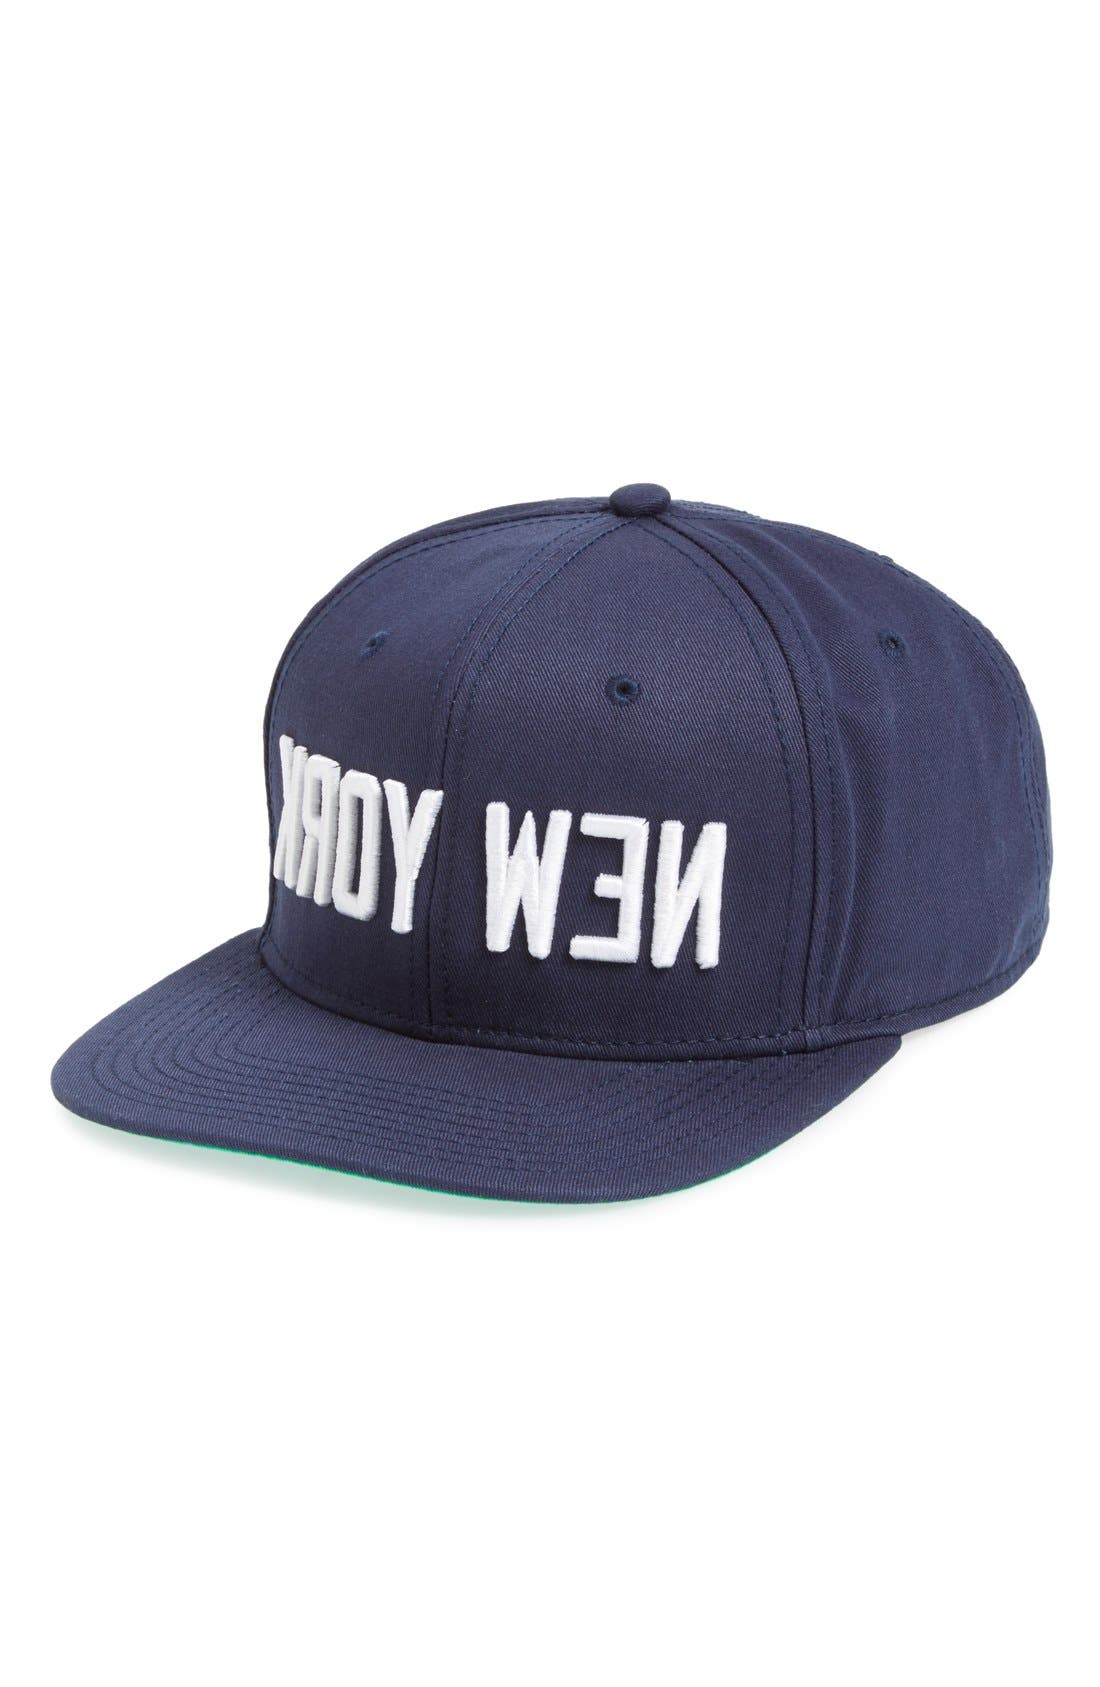 MIGHTY HEALTHY 'Kroy Wen' Snapback Baseball Cap, Main, color, 410